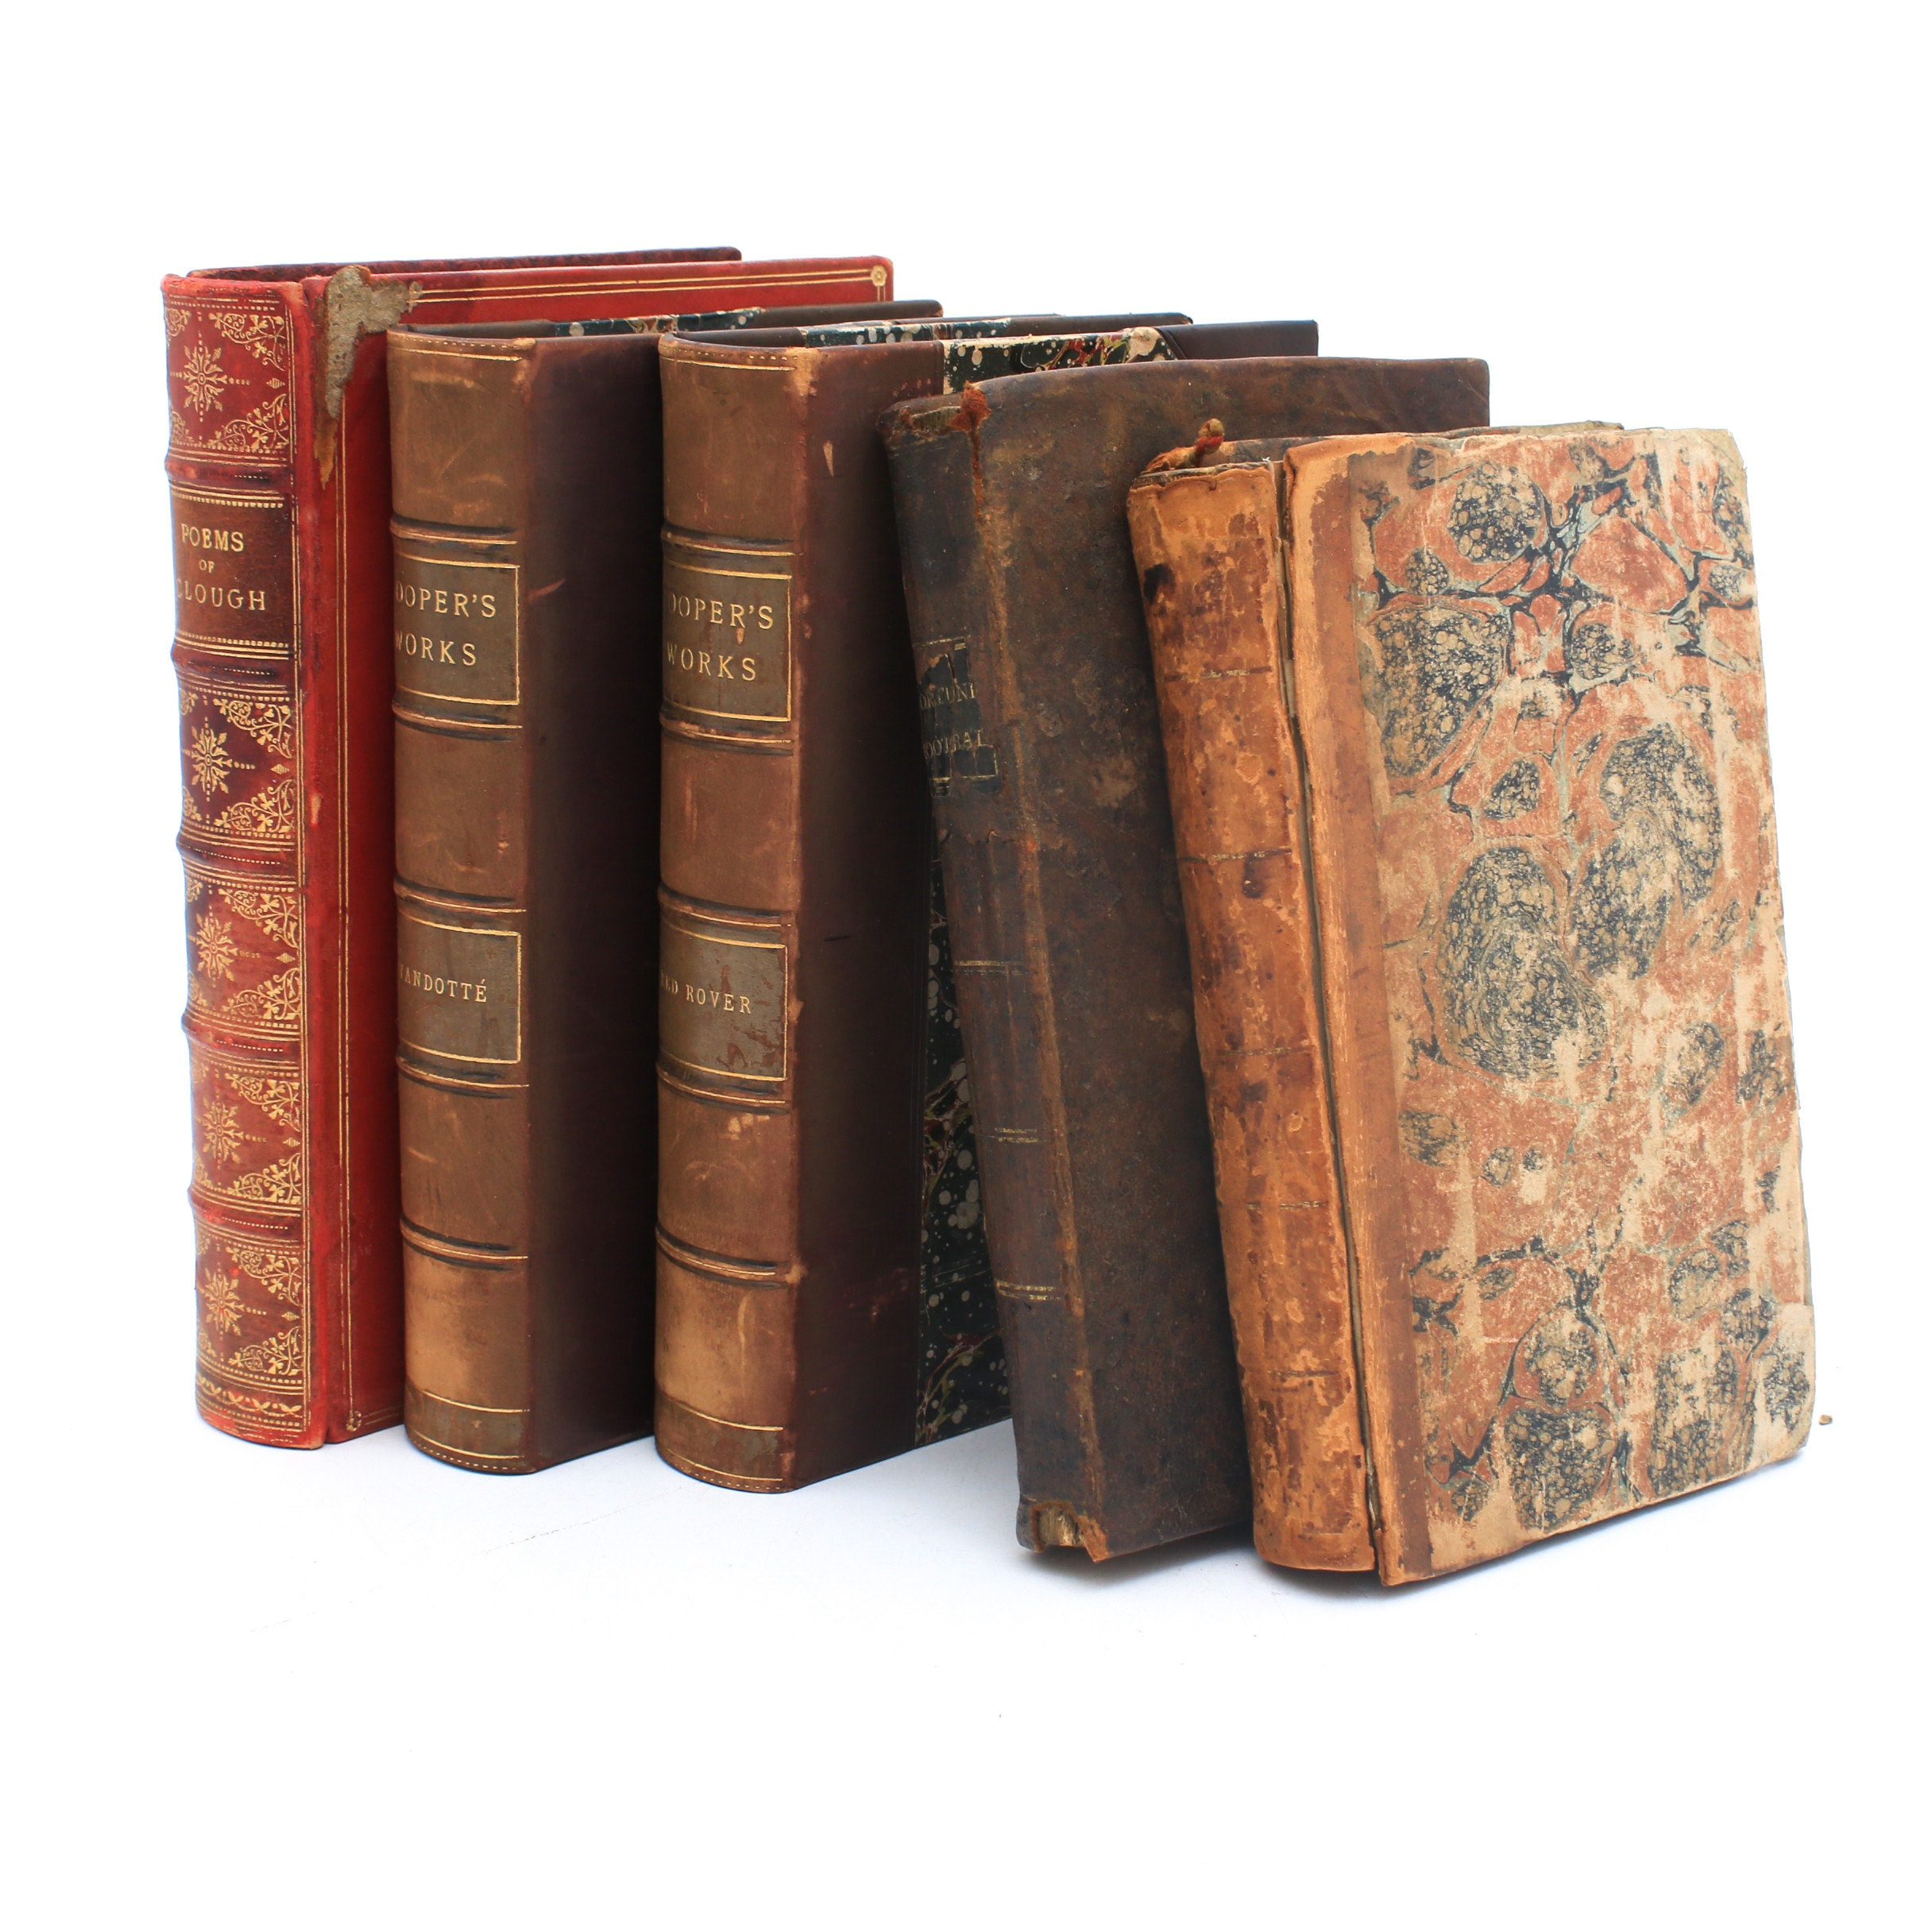 Antique Poetry Books and Novels Featuring James Fenimore Cooper